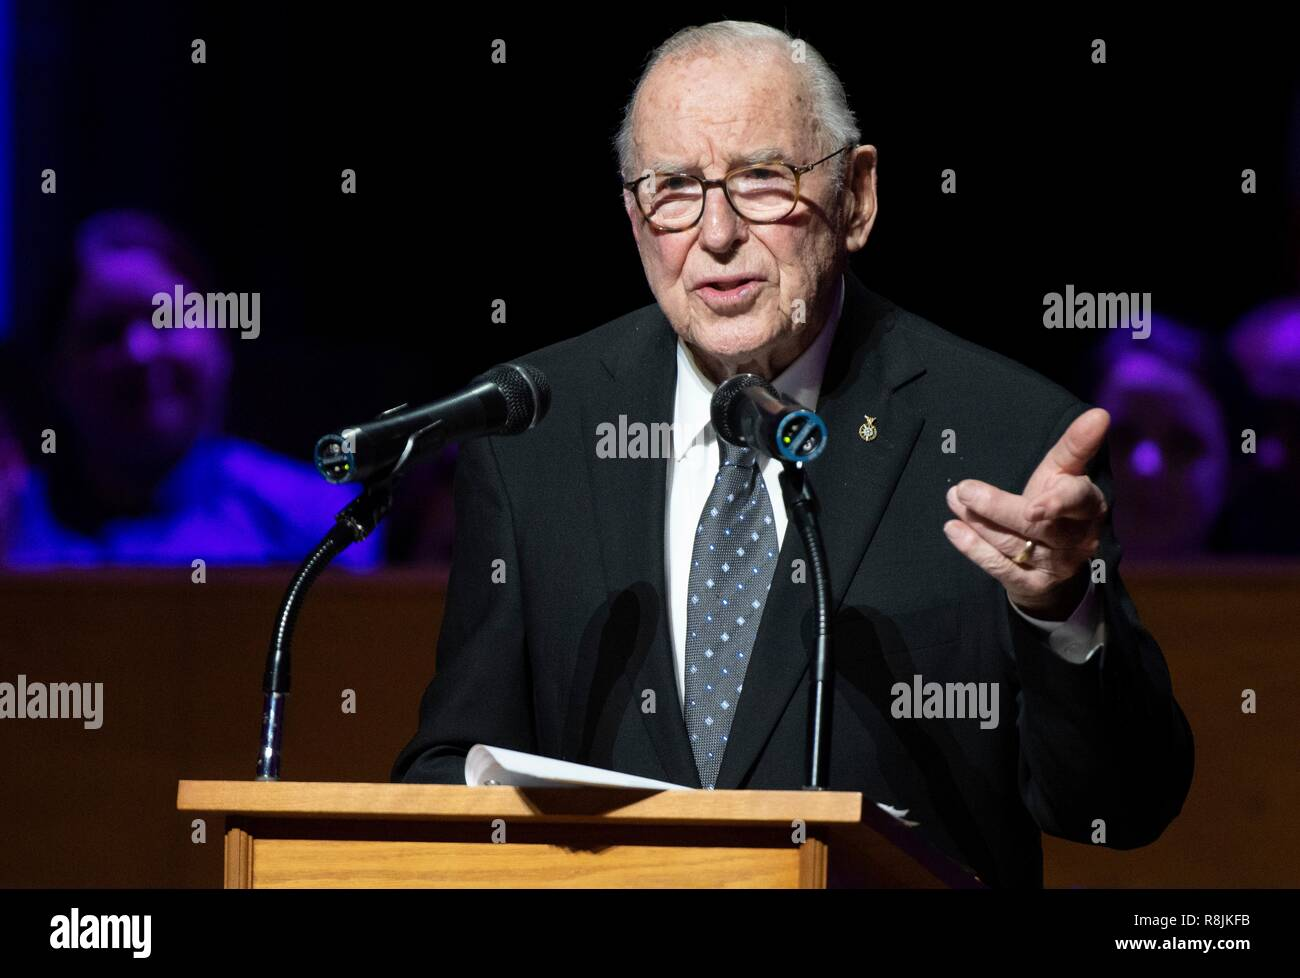 Apollo 8 astronaut Jim Lovell speaks during the Smithsonian National Air and Space Museums Spirit of Apollo event commemorating the 50th anniversary of Apollo 8 at the National Cathedral December 11, 2018 in Washington, DC. Apollo 8 was the first manned spaceflight to the Moon and back carrying astronauts Frank Borman, Jim Lovell, and William Anders in December of 1968. - Stock Image